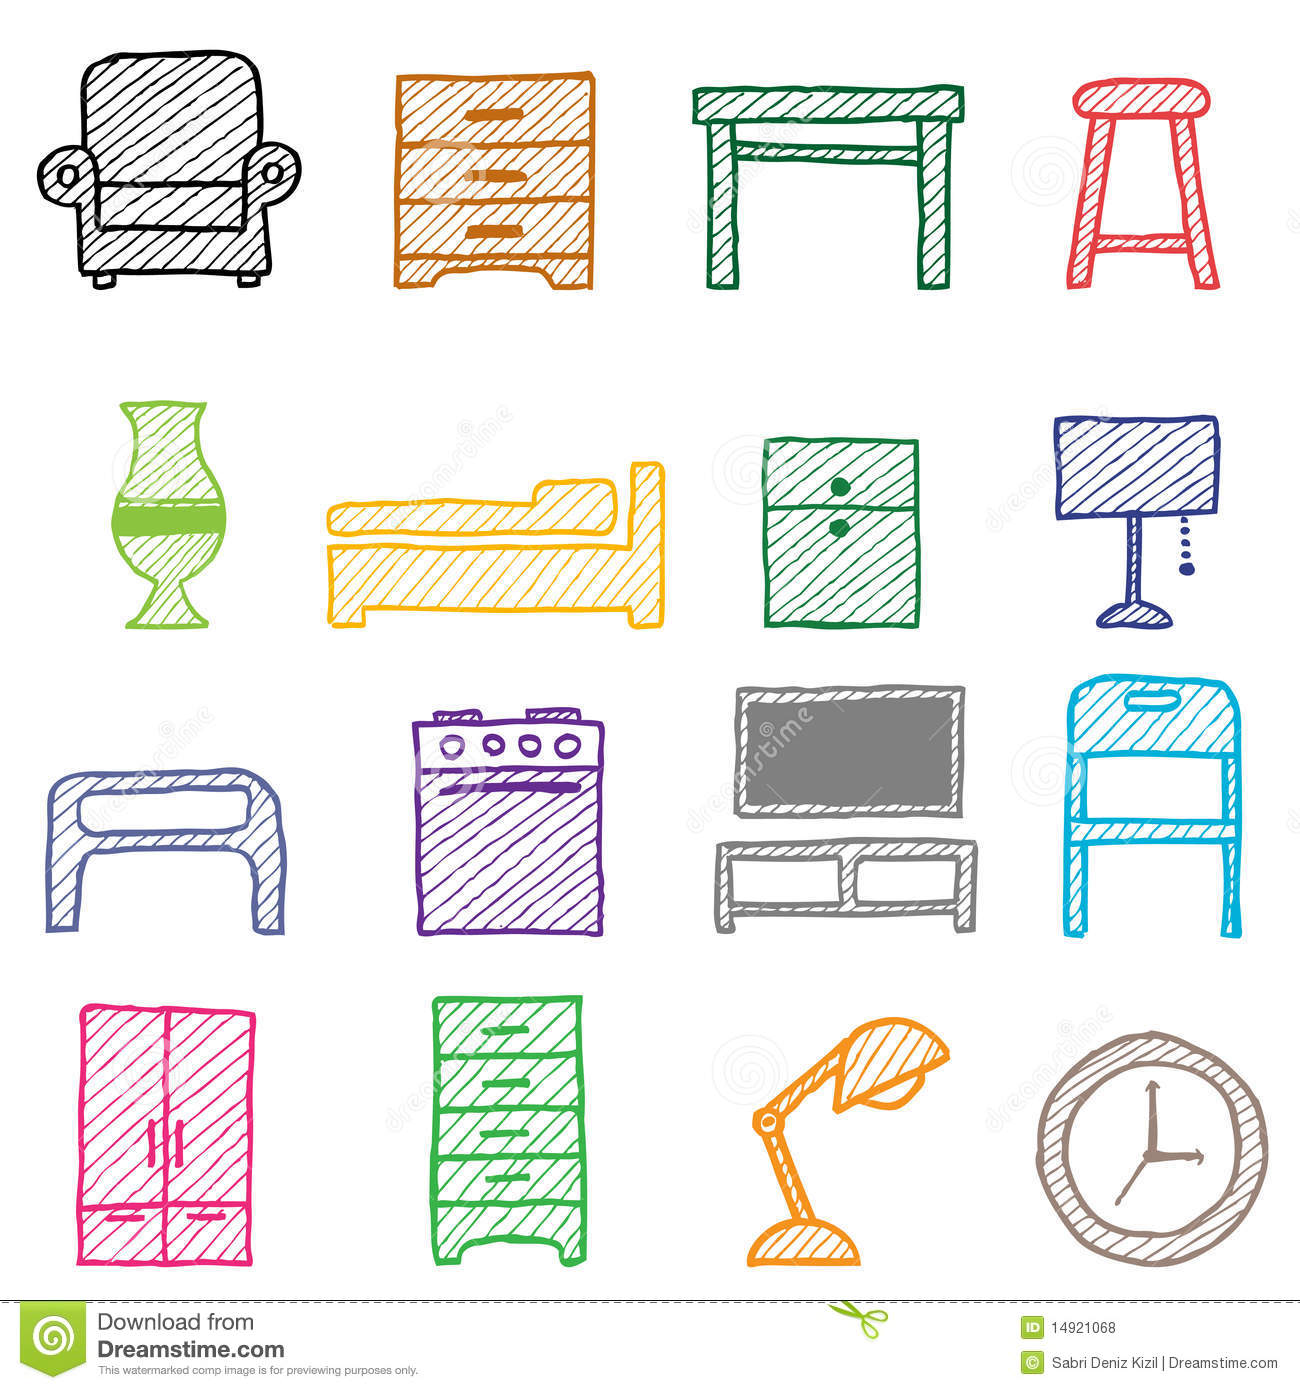 Royalty Bedroom Furniture Hand Drawing Furniture Icons Royalty Free Stock Photos